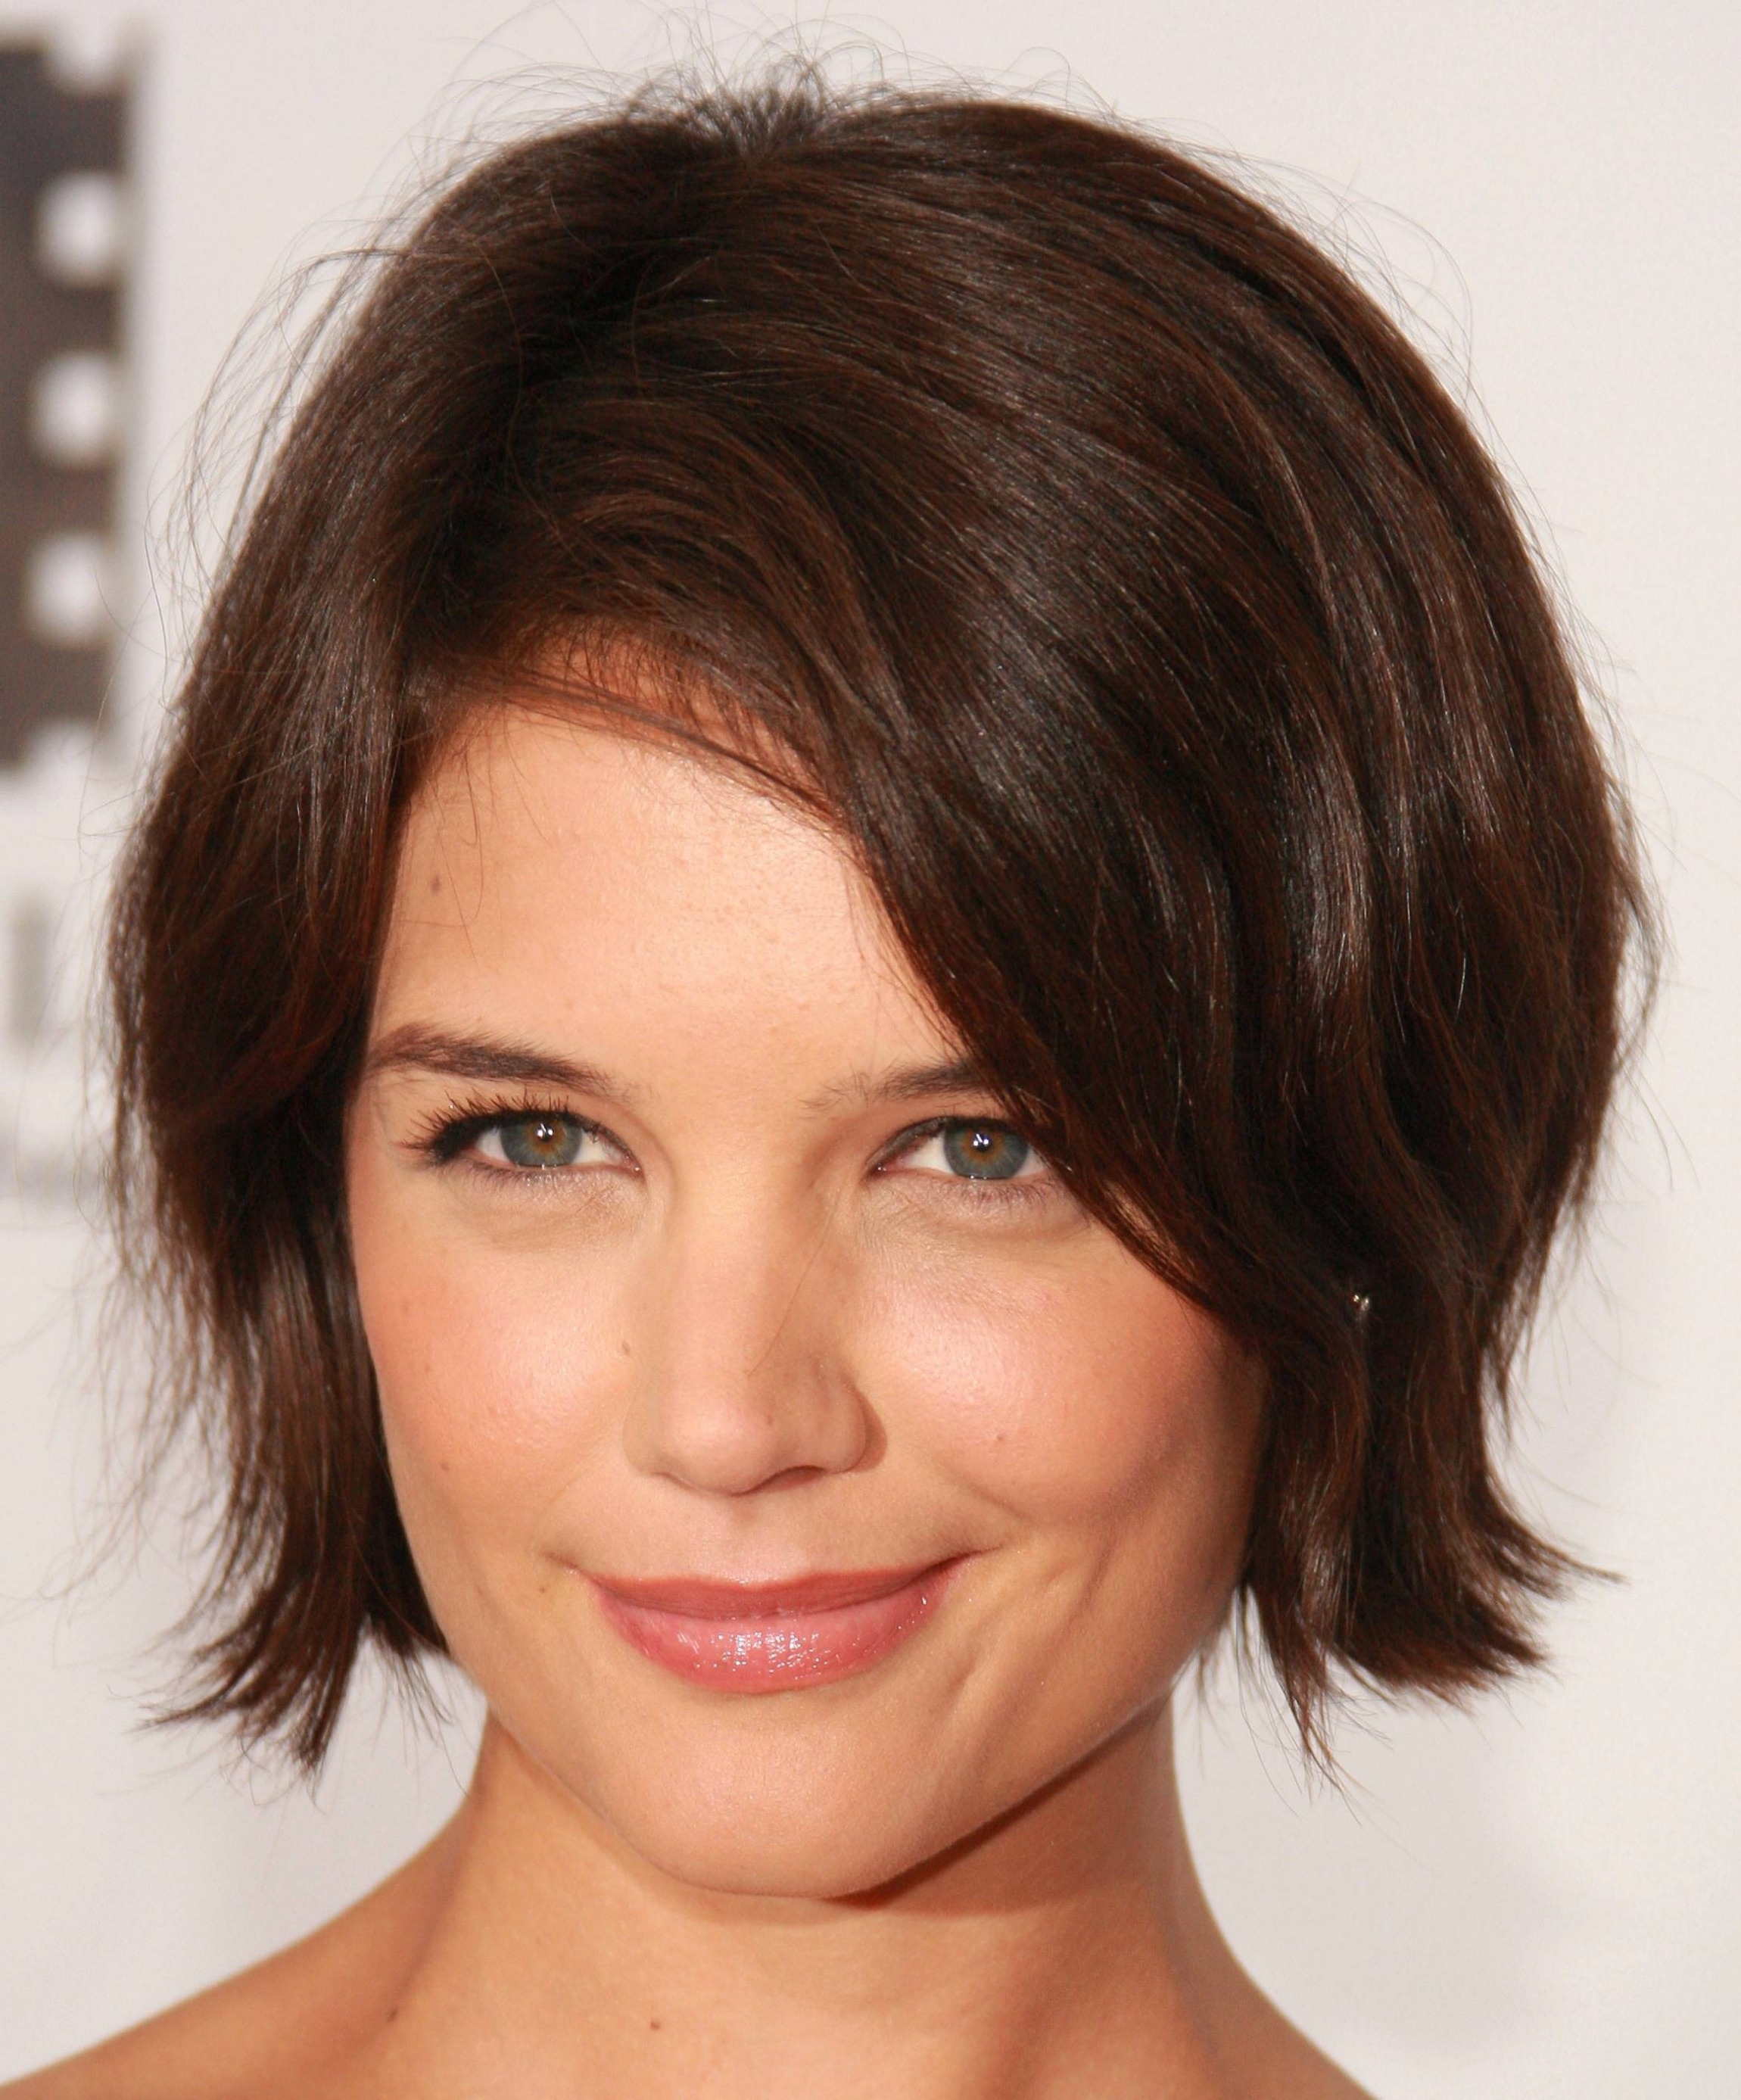 Best Short Hairstyles – Cute Hair Cut Guide For Round Face Shape Pertaining To Medium Short Hairstyles Round Faces (View 3 of 25)